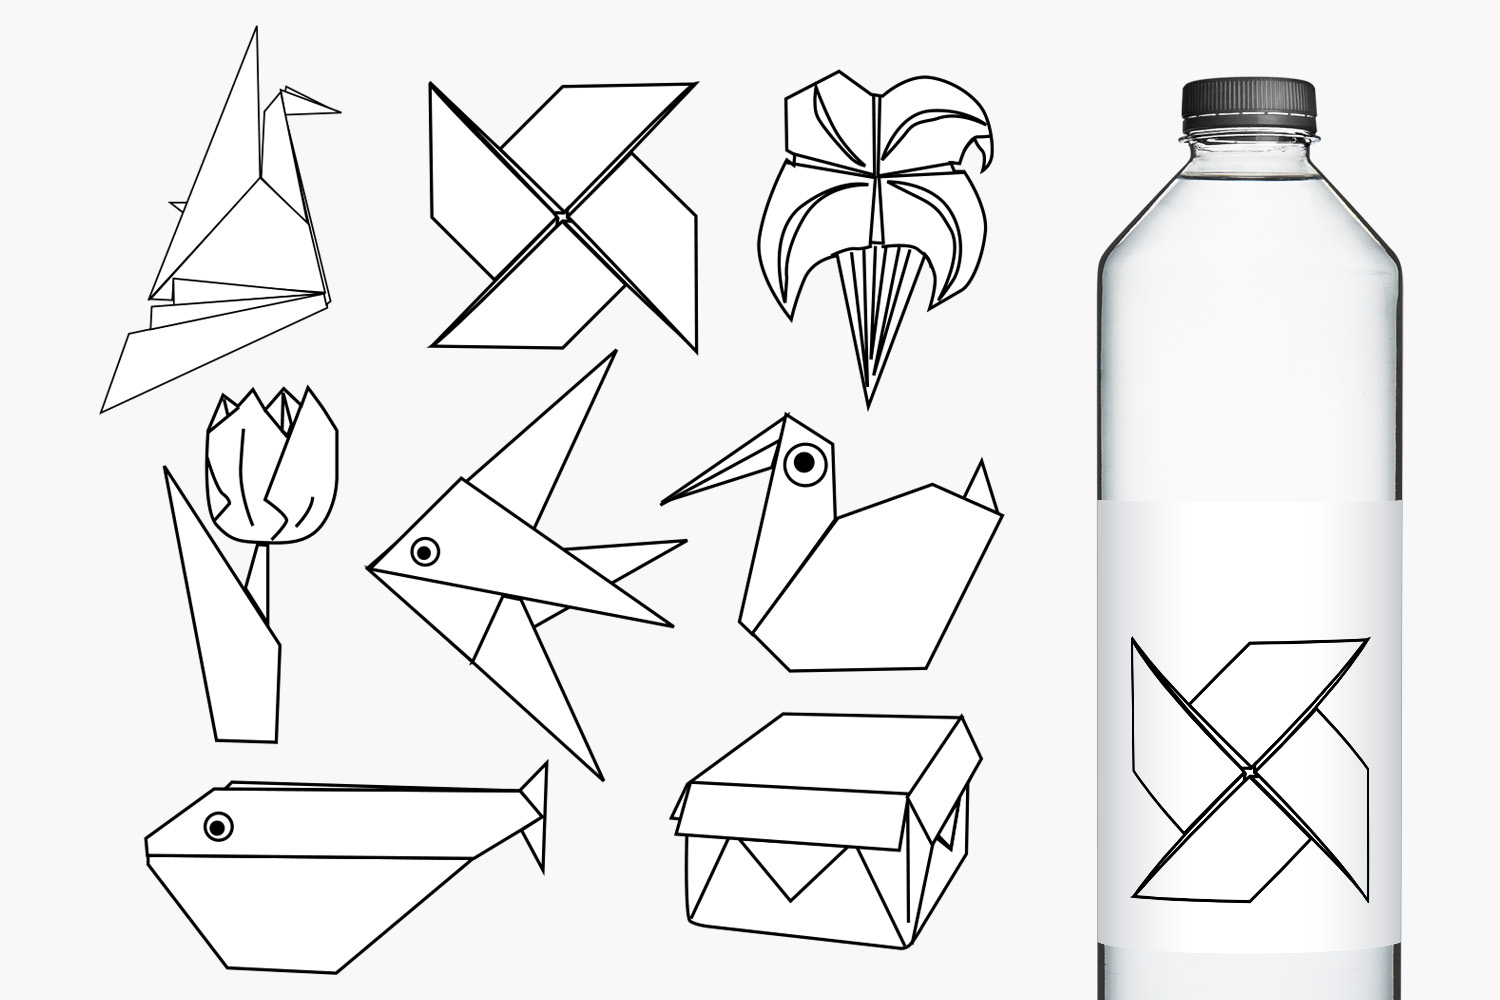 Paper Art Origami Illustrations example image 2